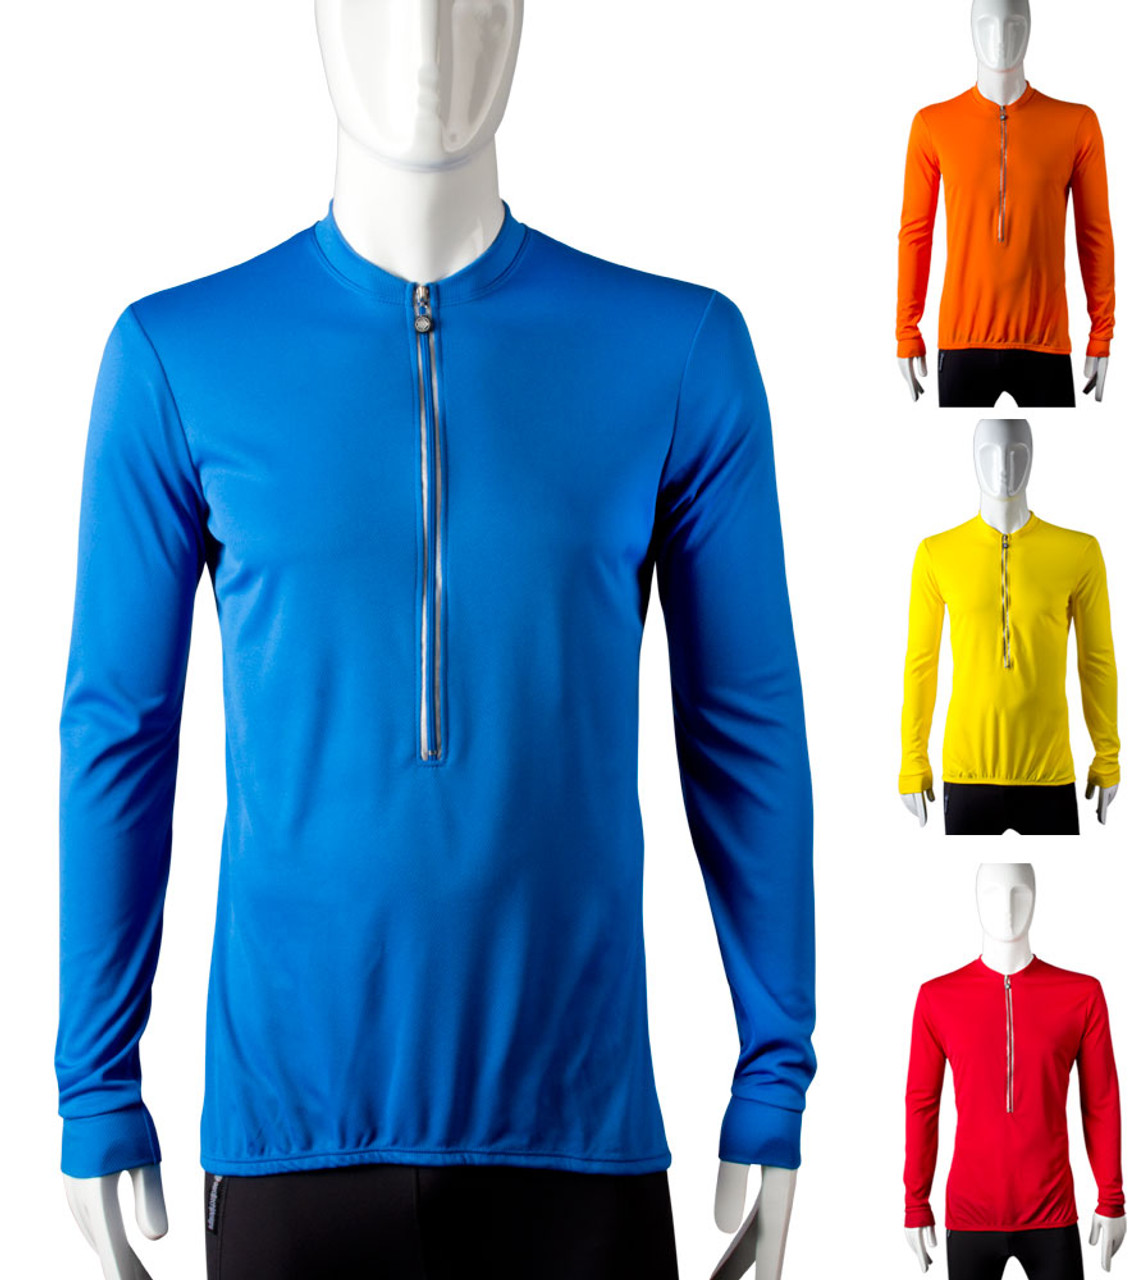 Men S Tall Cycling Jersey Long Sleeves And Torso Aero Tech Designs